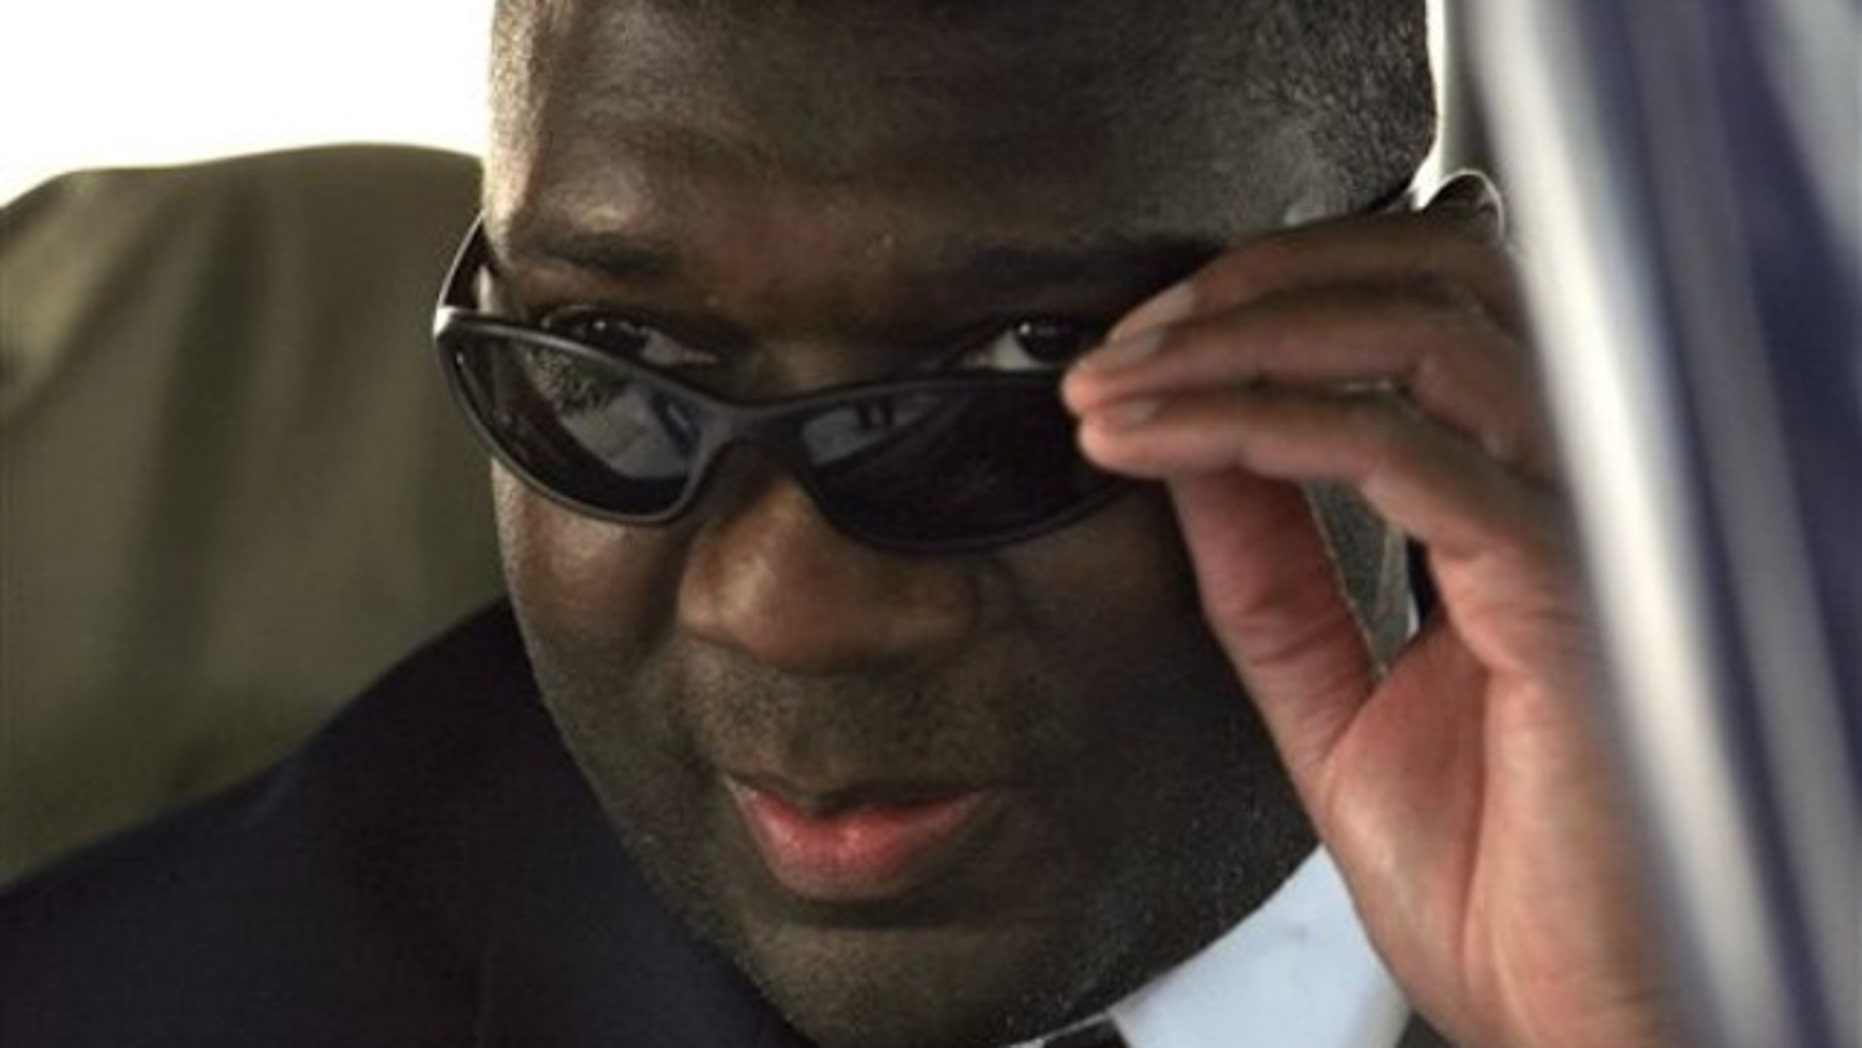 Democratic candidate for U.S. Senate, Alvin Greene, leaves the Richland County Courthouse in Columbia, S.C. , following a bond hearing on his misdemeanor obscenity charge, Thursday, Oct. 7, 2010. (AP)